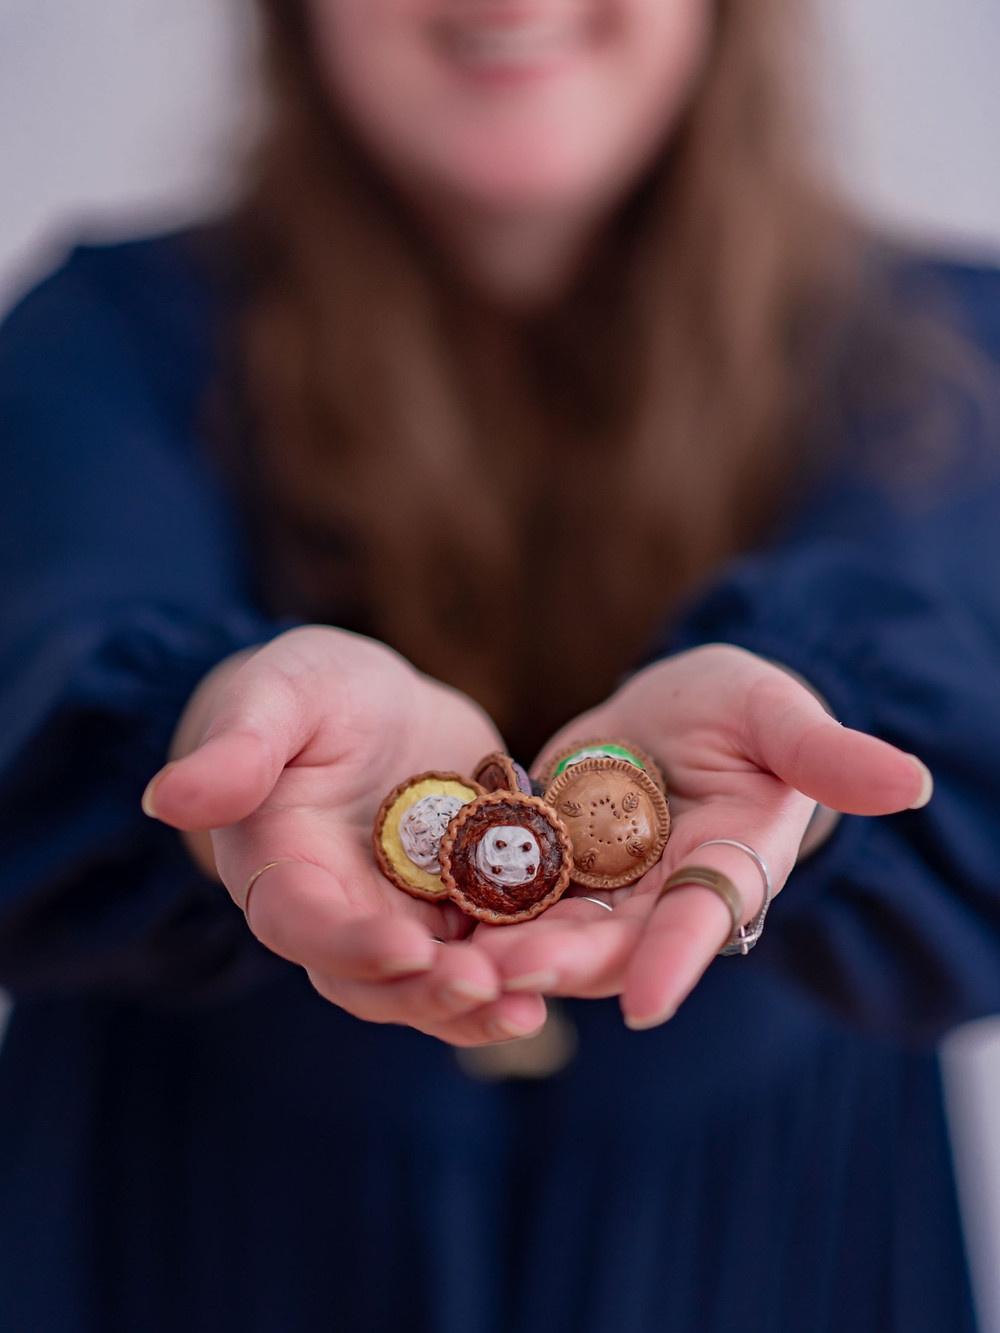 Hands offering miniature pies with a smiling face in the background